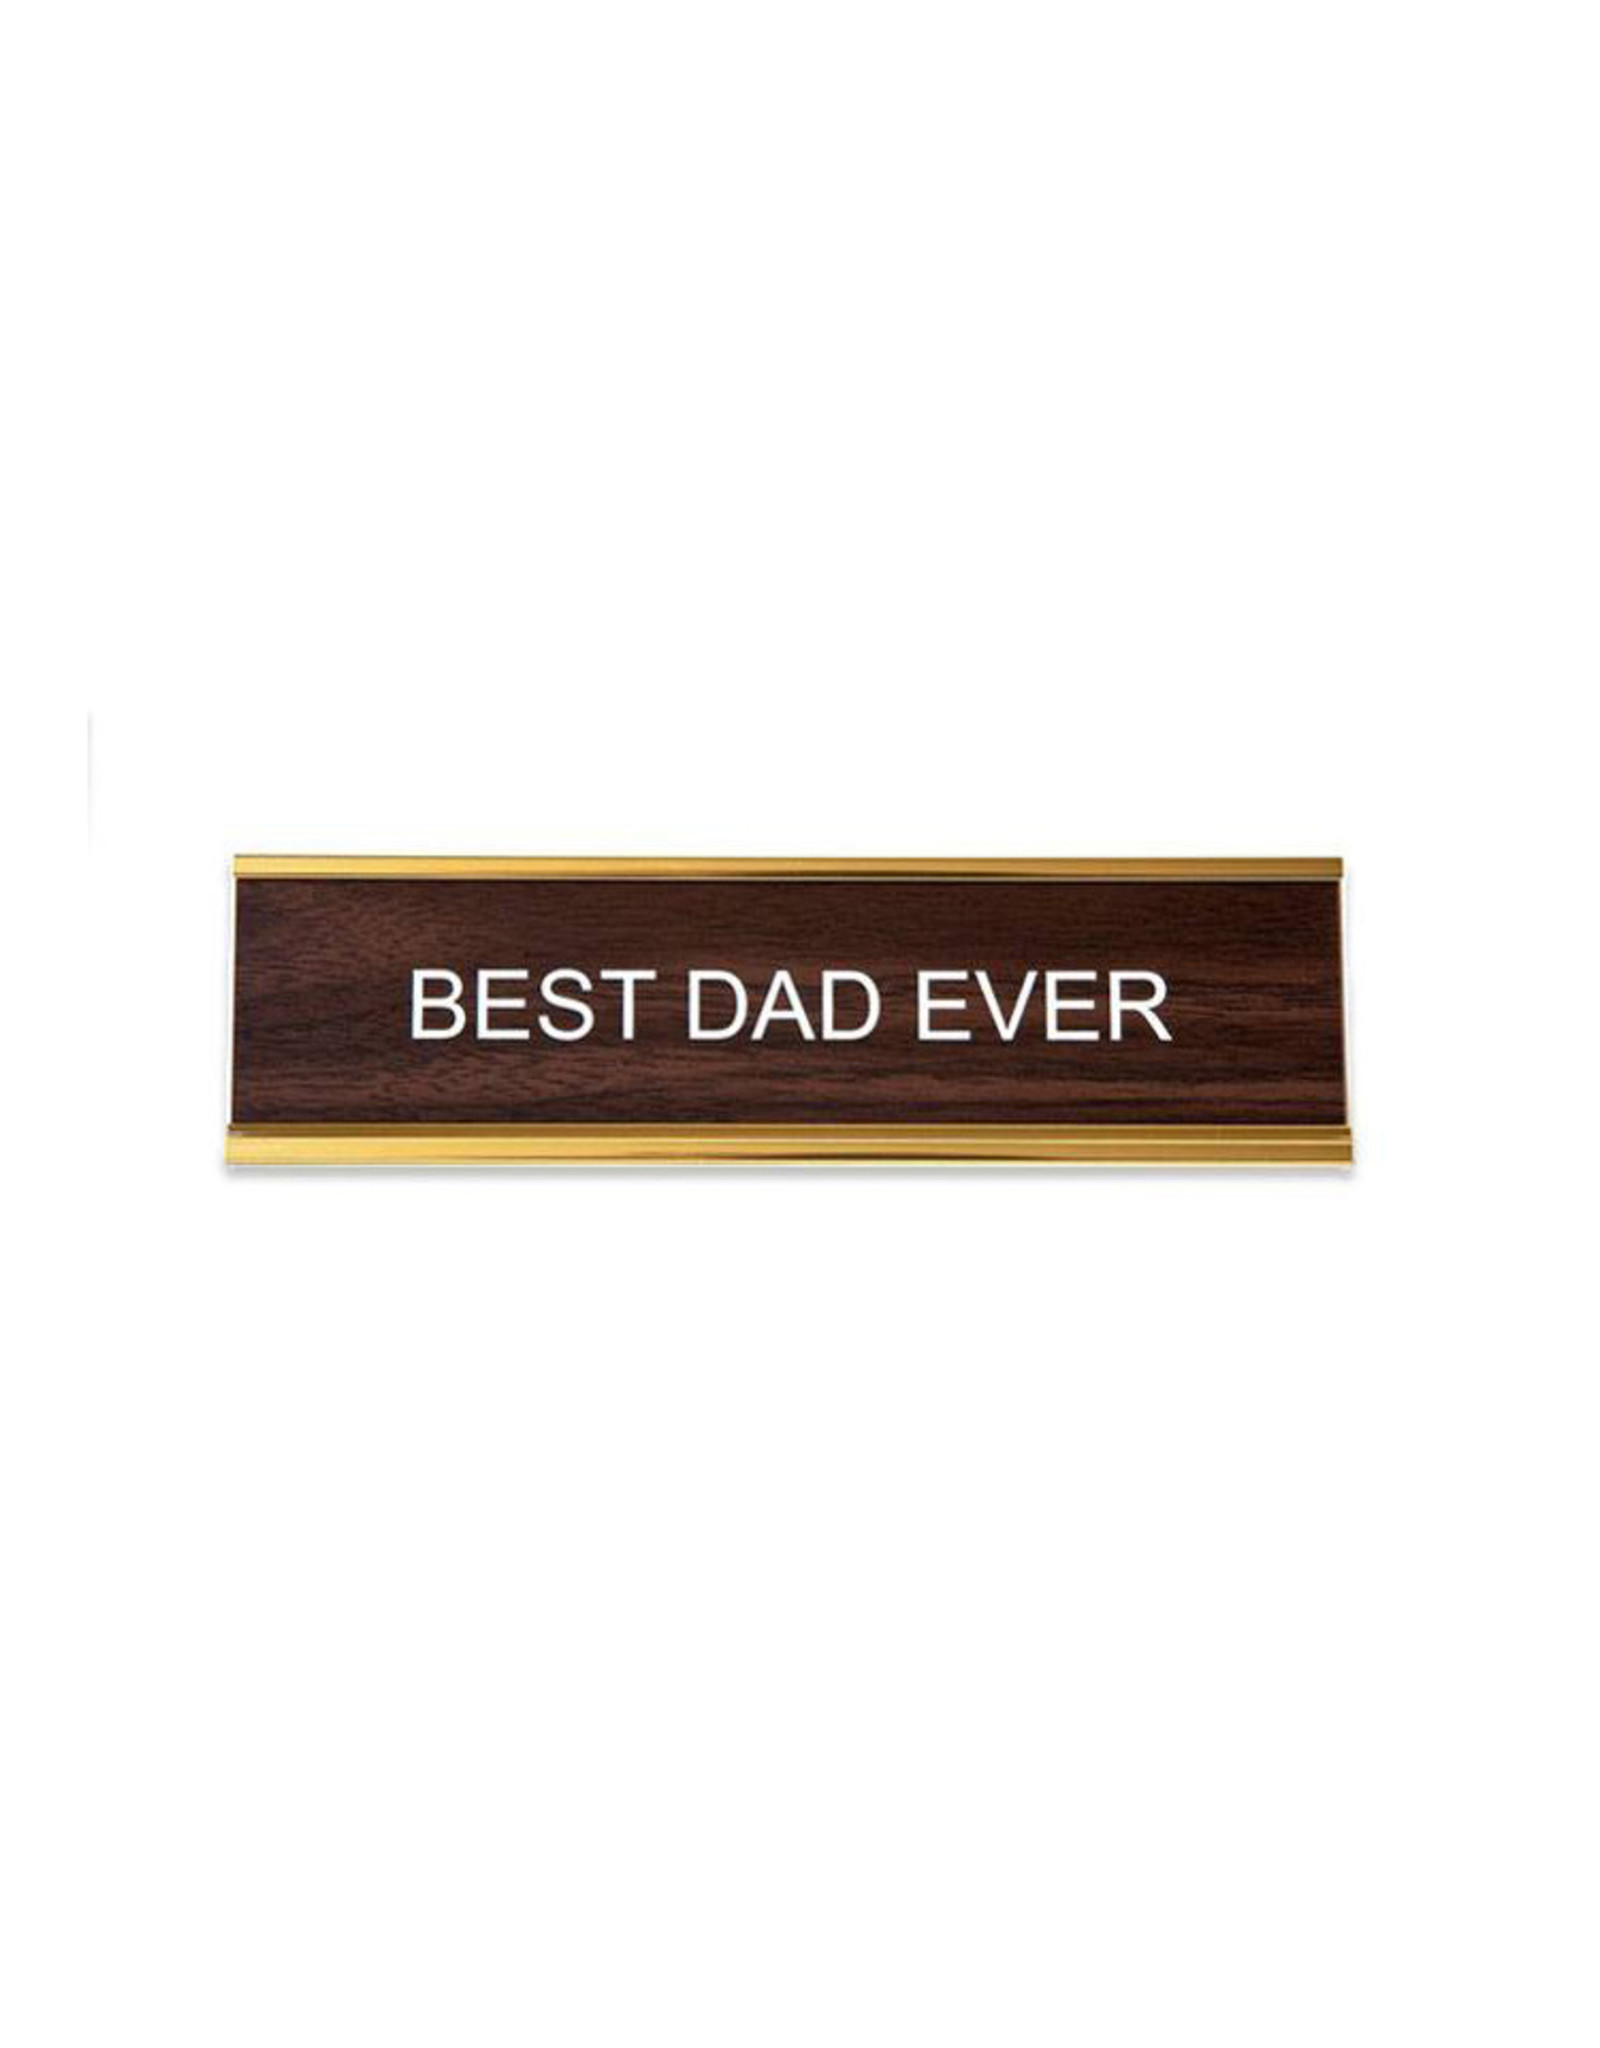 Best Dad Ever Office Sign